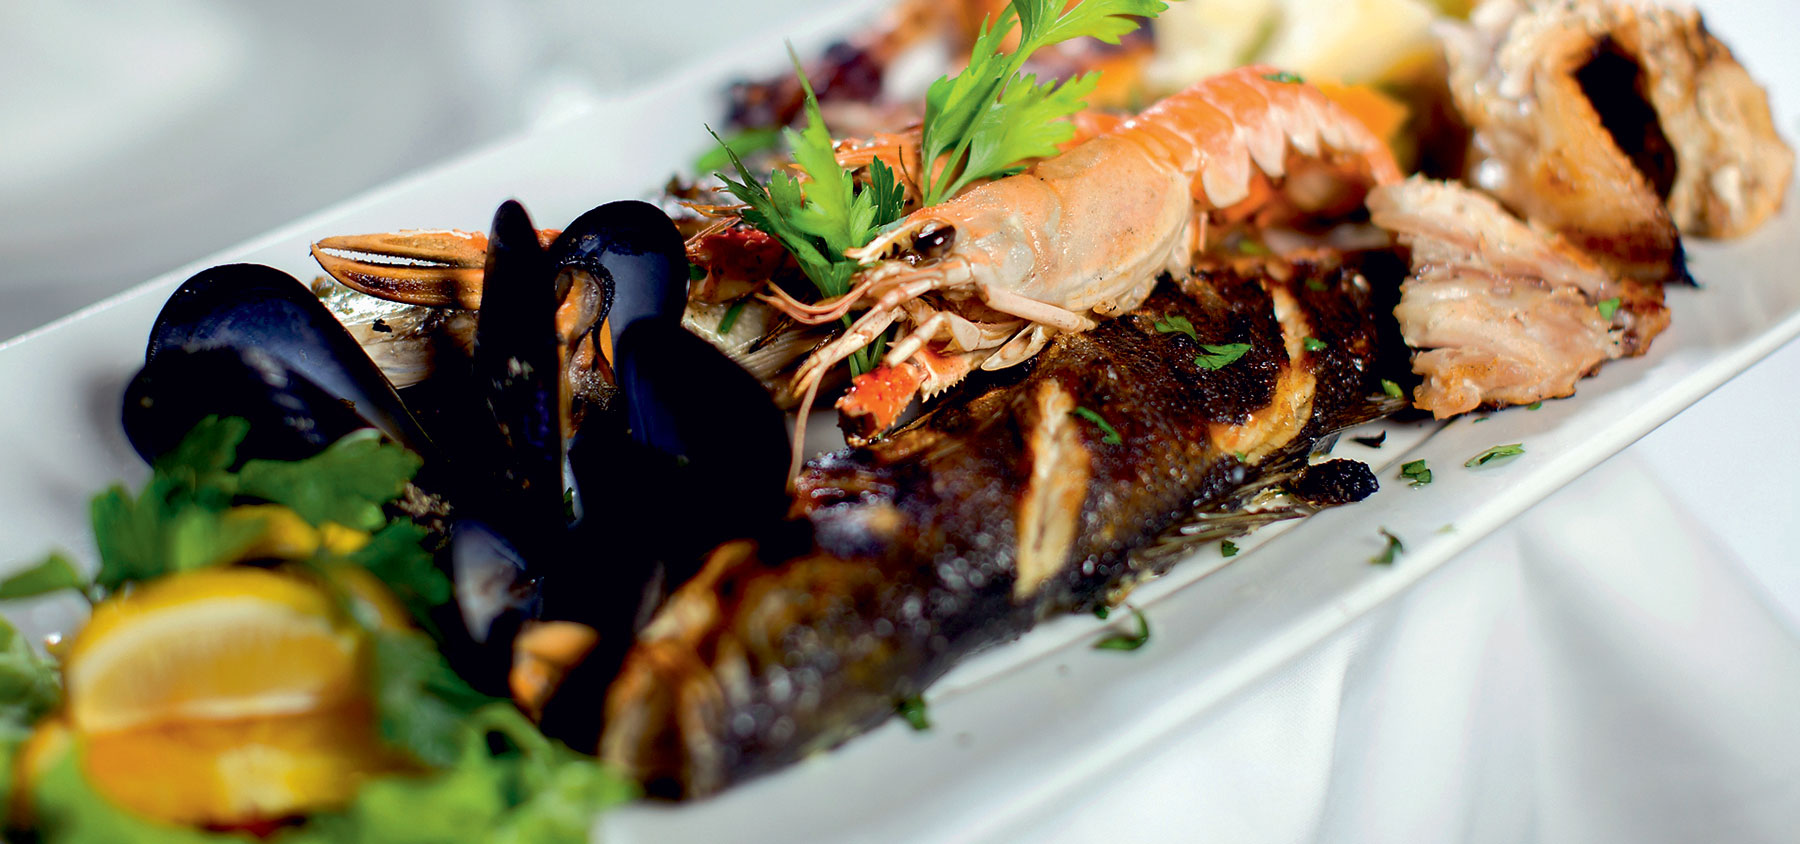 Archipelago Tours Blog and Tips: Michelin rated restaurants in Sibenik County